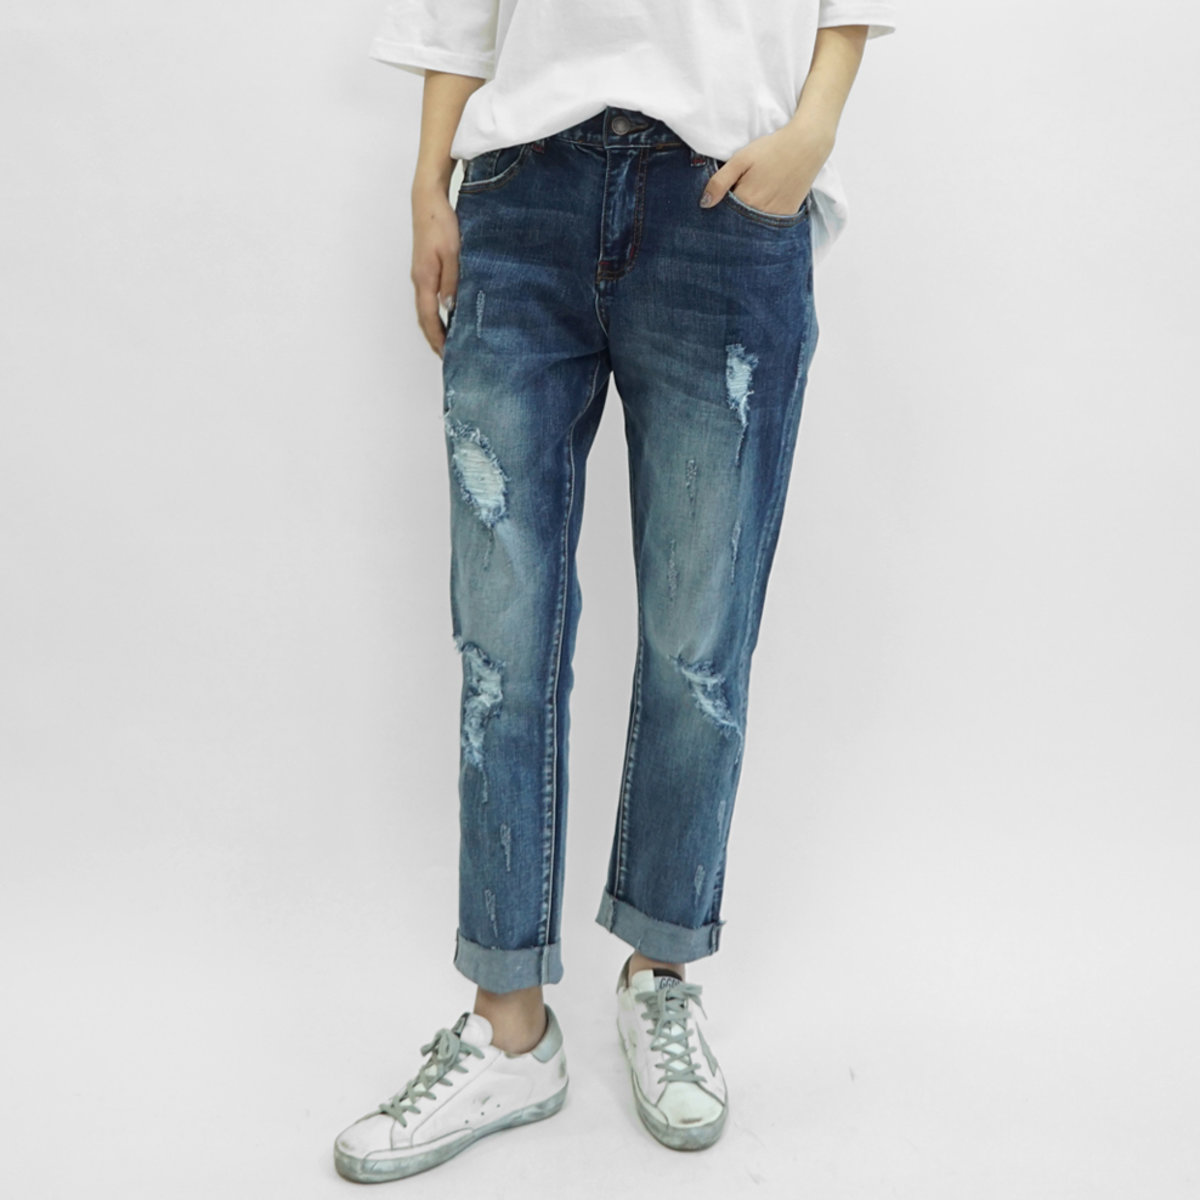 Na3005 Women'S Baggy Jeans